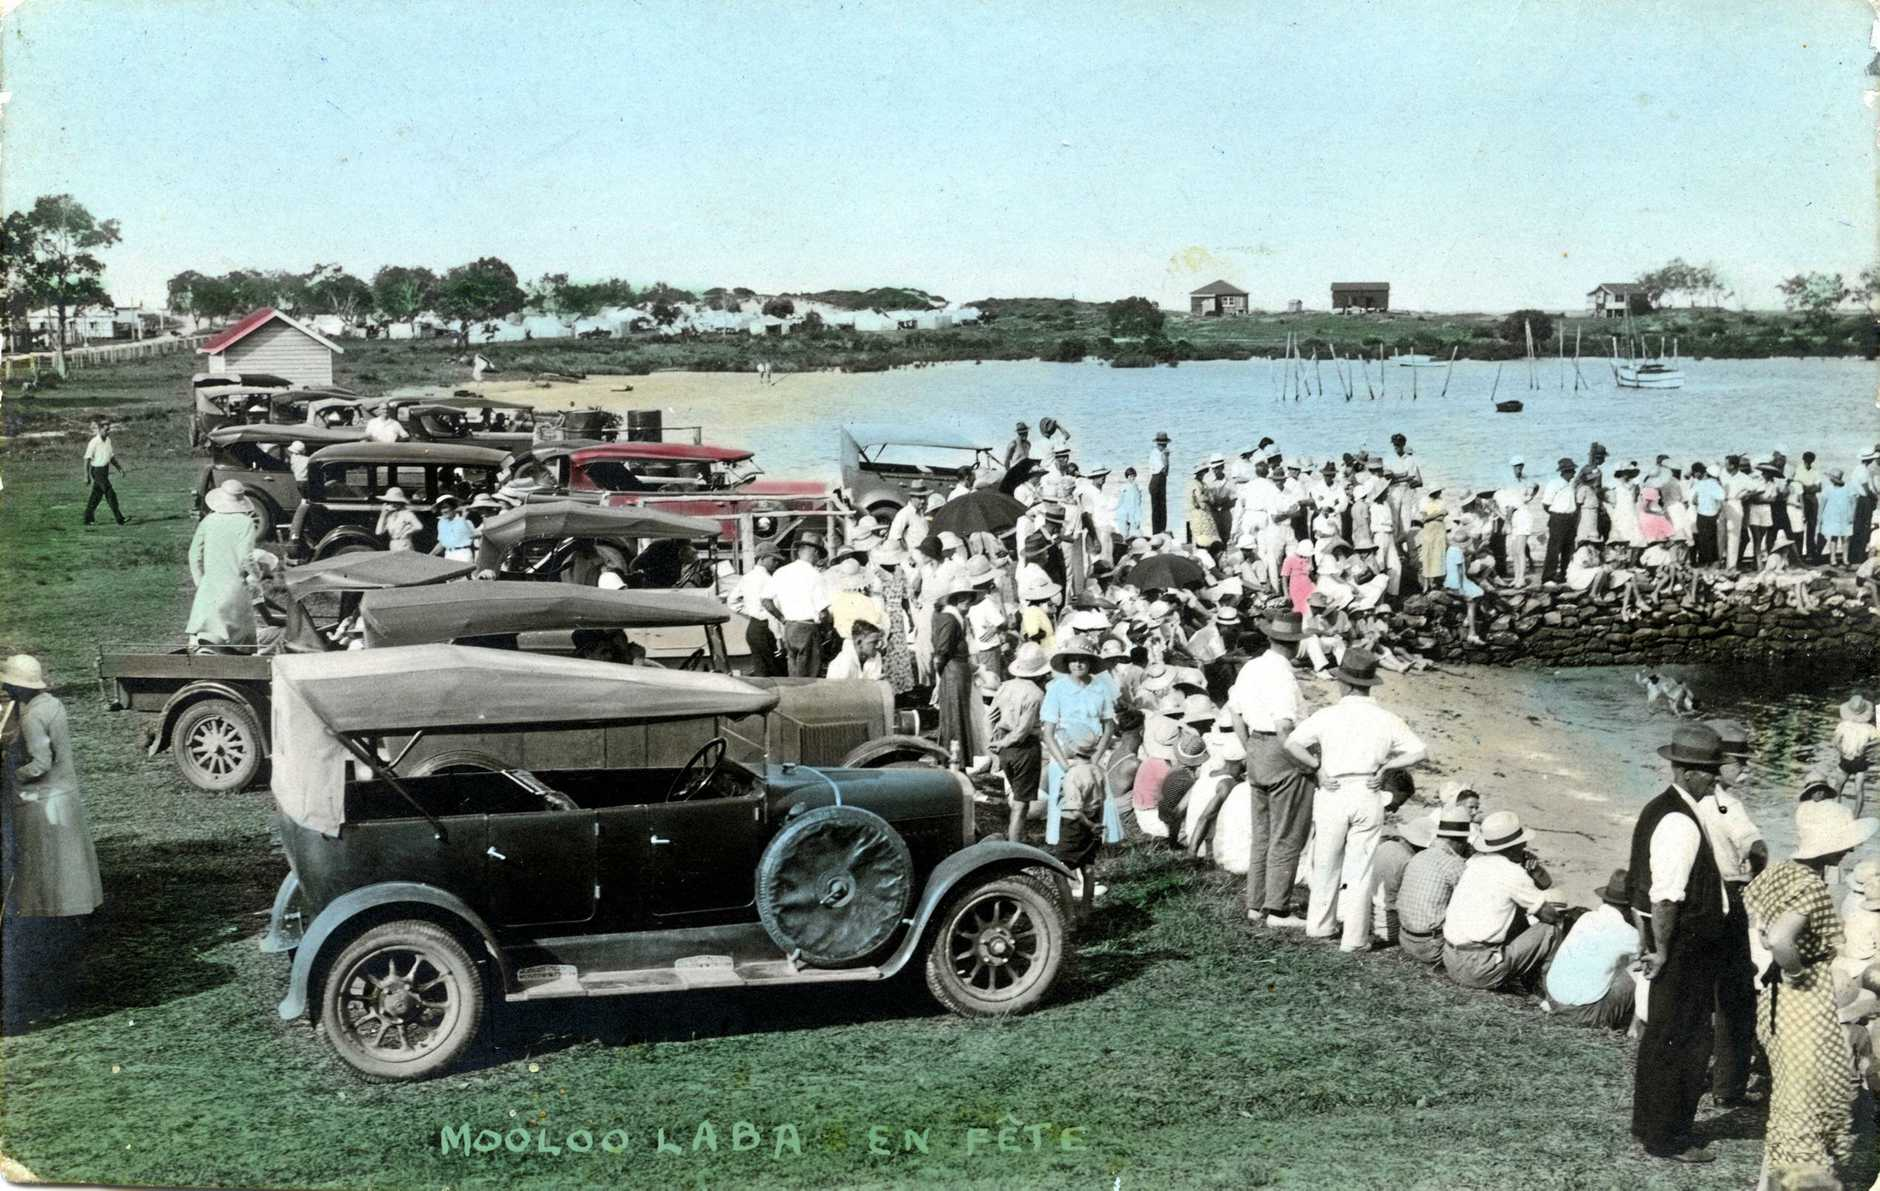 M867305 Crowds waiting on the Mooloolah River bank to welcome the Duke of Gloucester on his return for a trip along the River board Charles Clarke's motor launch 'Miss Bondoola', Mooloolaba, December 1934